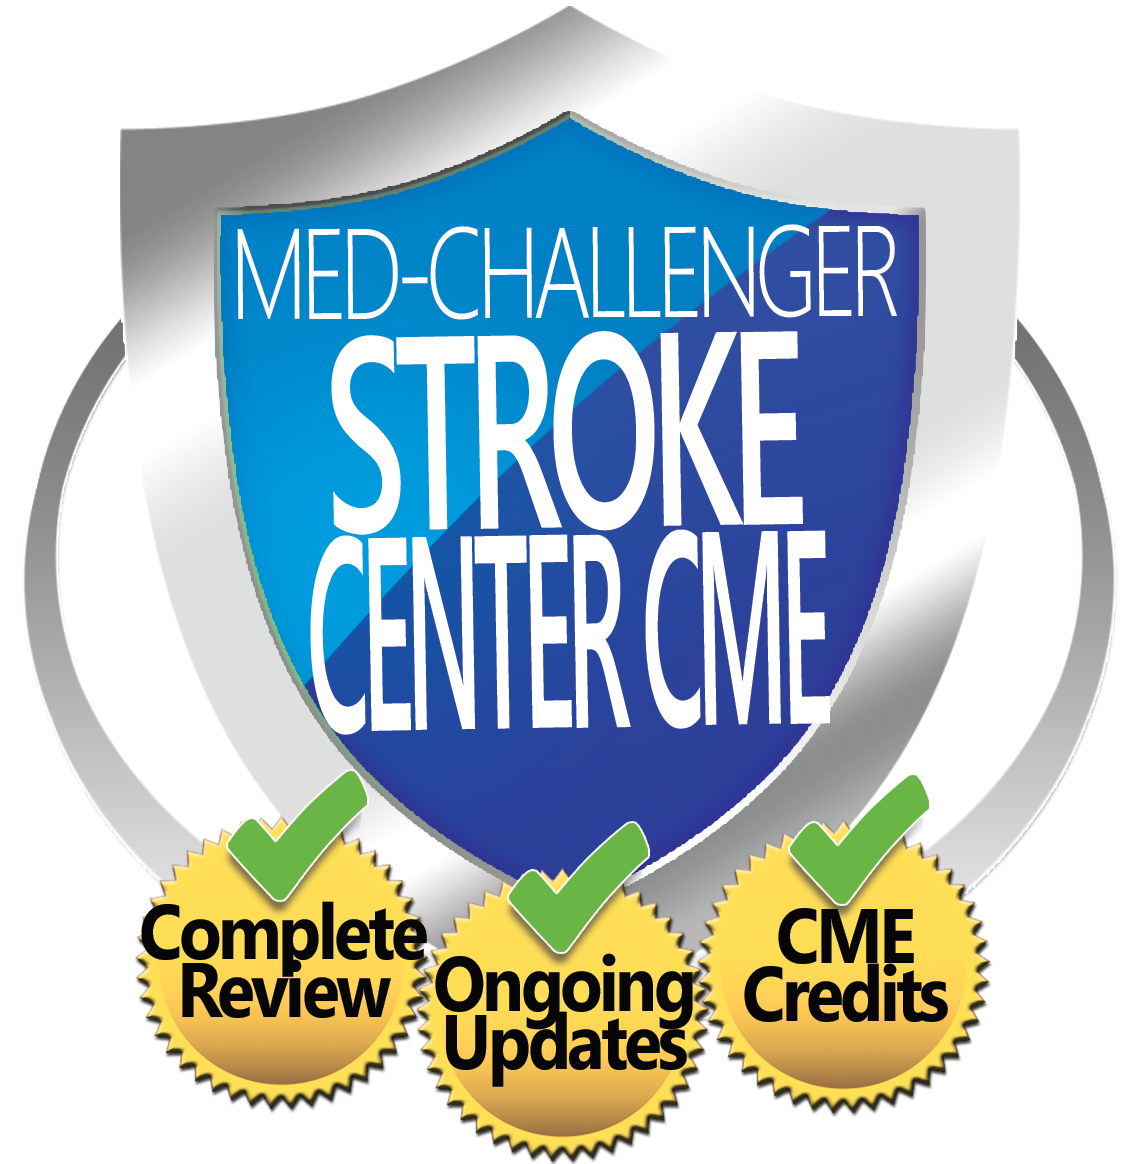 Stroke Skills Review, Med-Challenger Stroke Center CME, Complete Review, Ongoing Updates, CME Credits